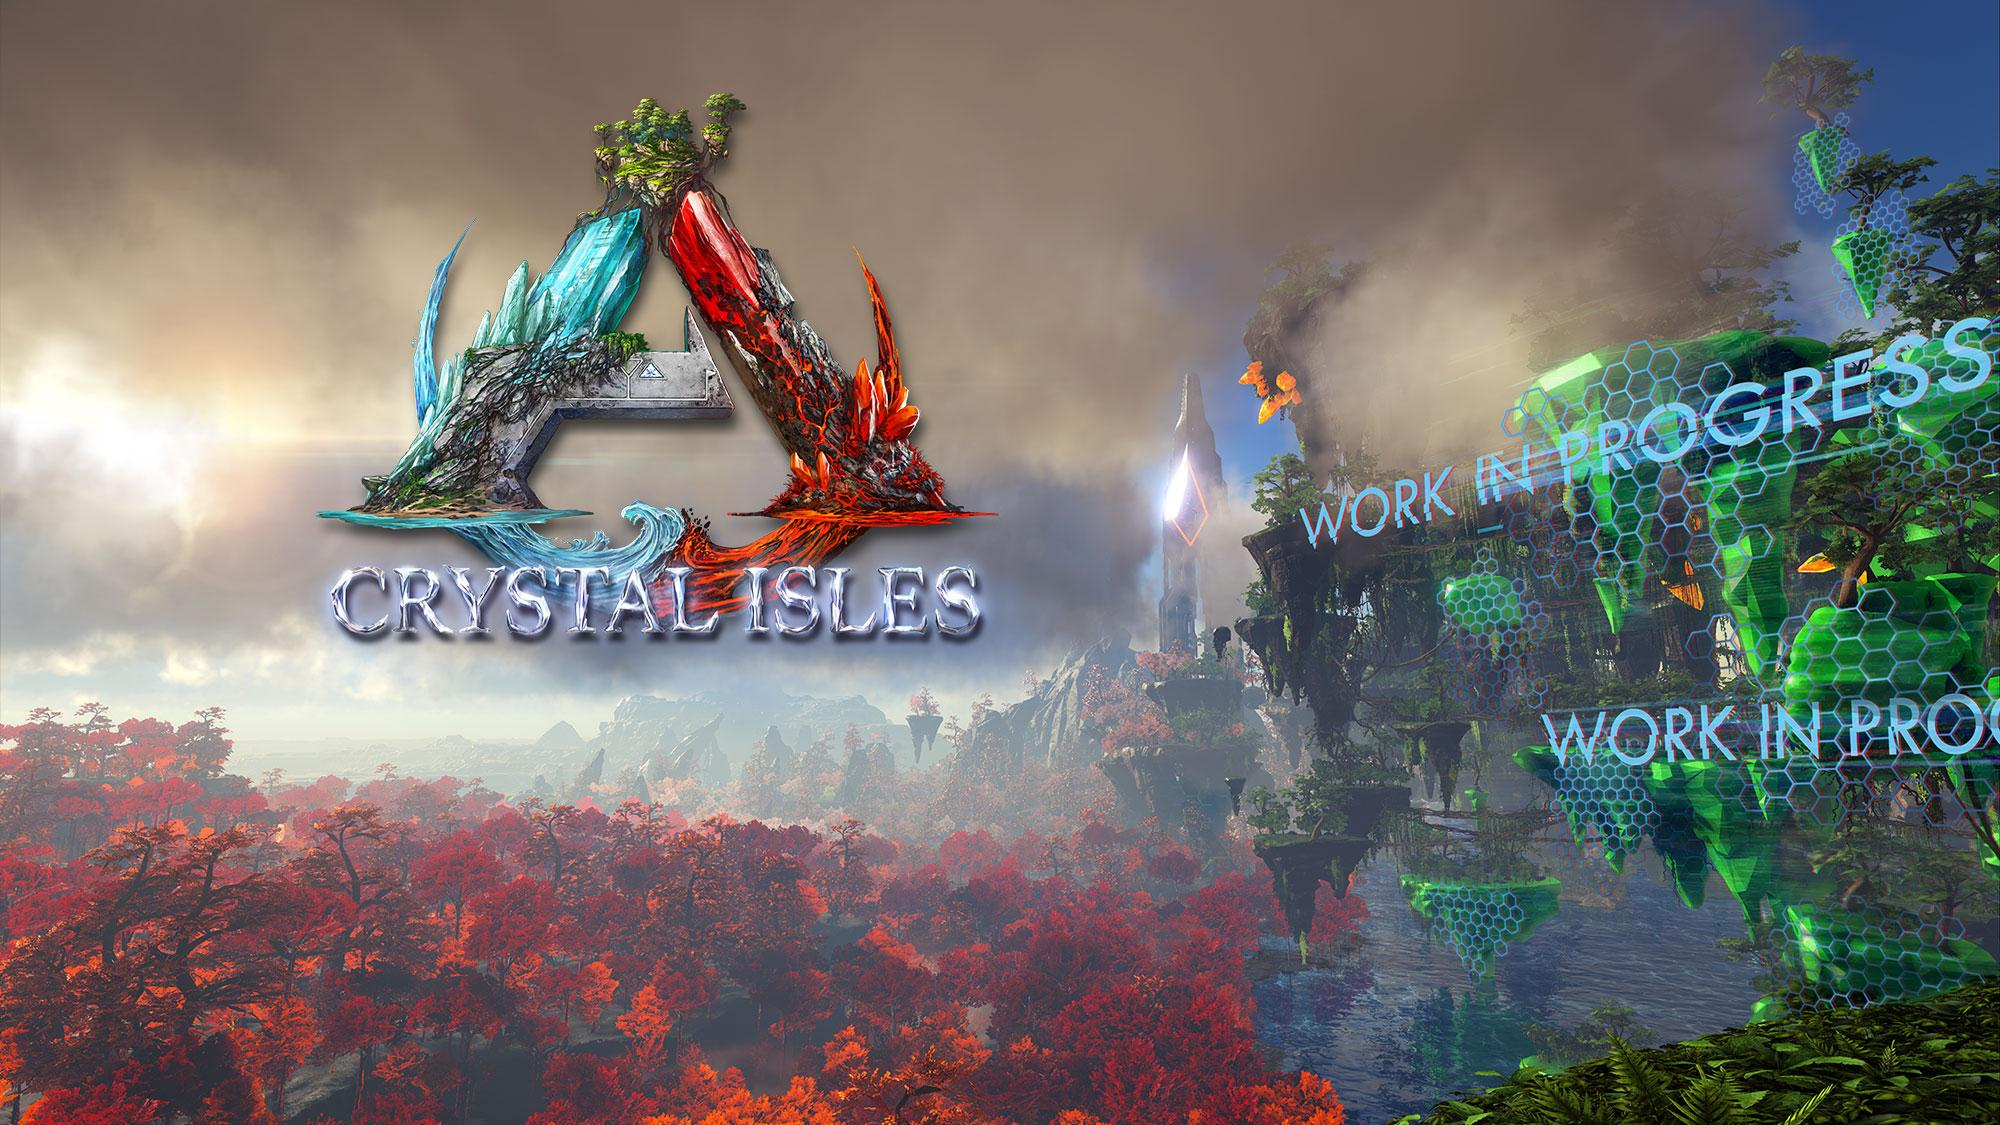 Community Crunch 218 New Free Map Dlc New Sponsored Mods And On The Horizon Ark News Ark Official Community Forums Crystal isles, formerly known as iso: community crunch 218 new free map dlc